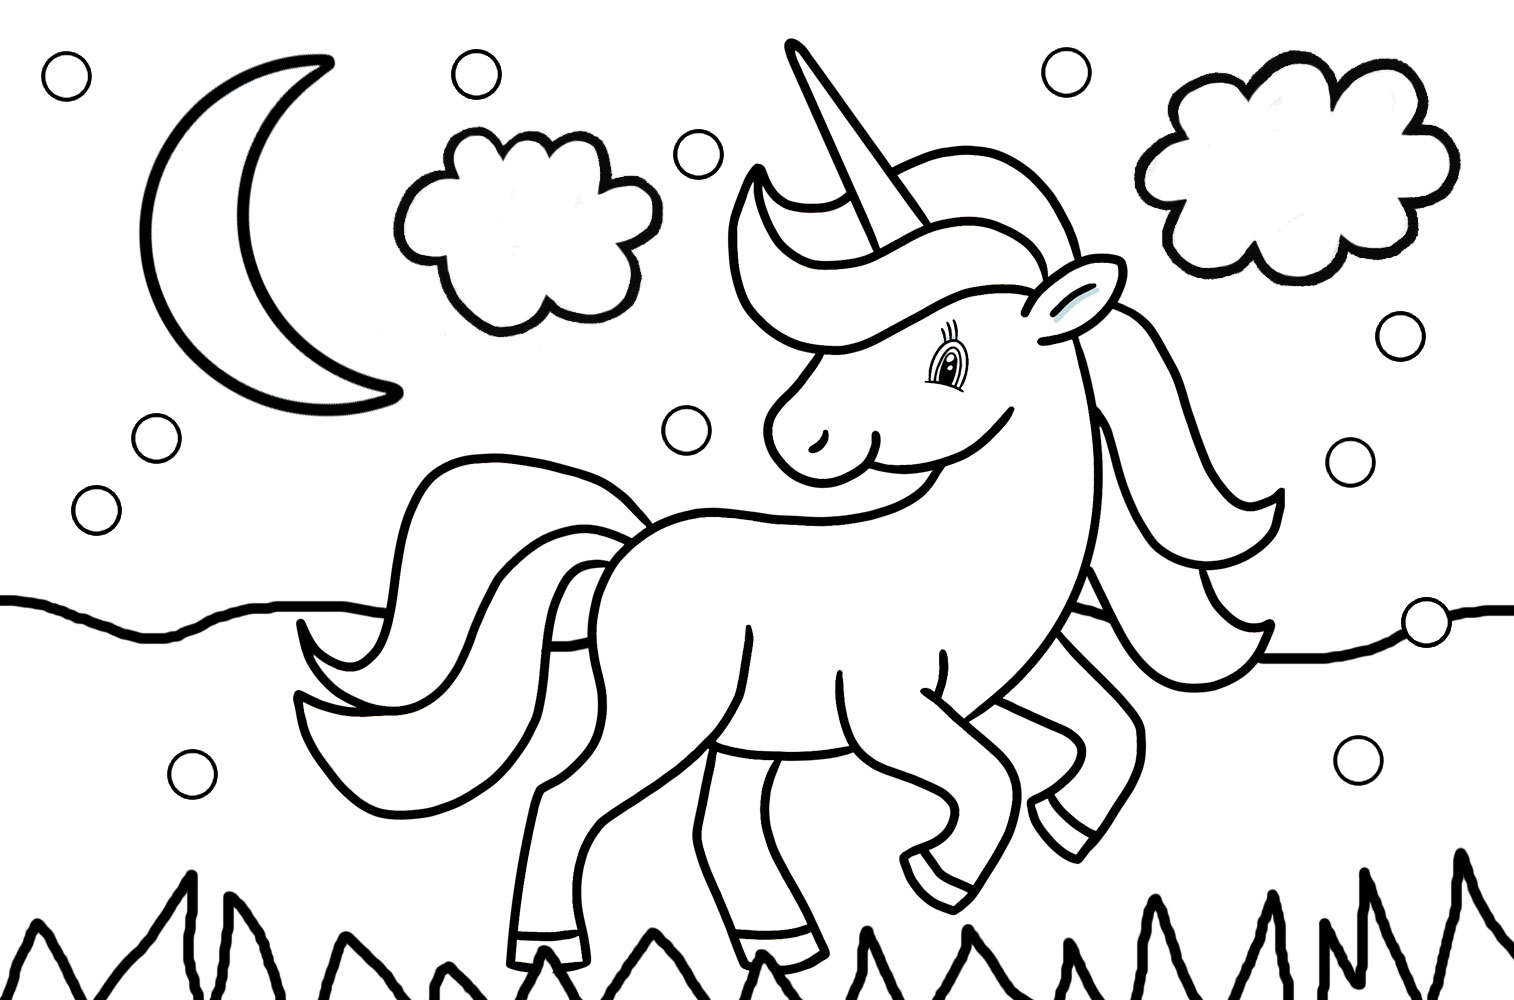 Simple colouring page to print for a young child, depicting a unicorn in the snow